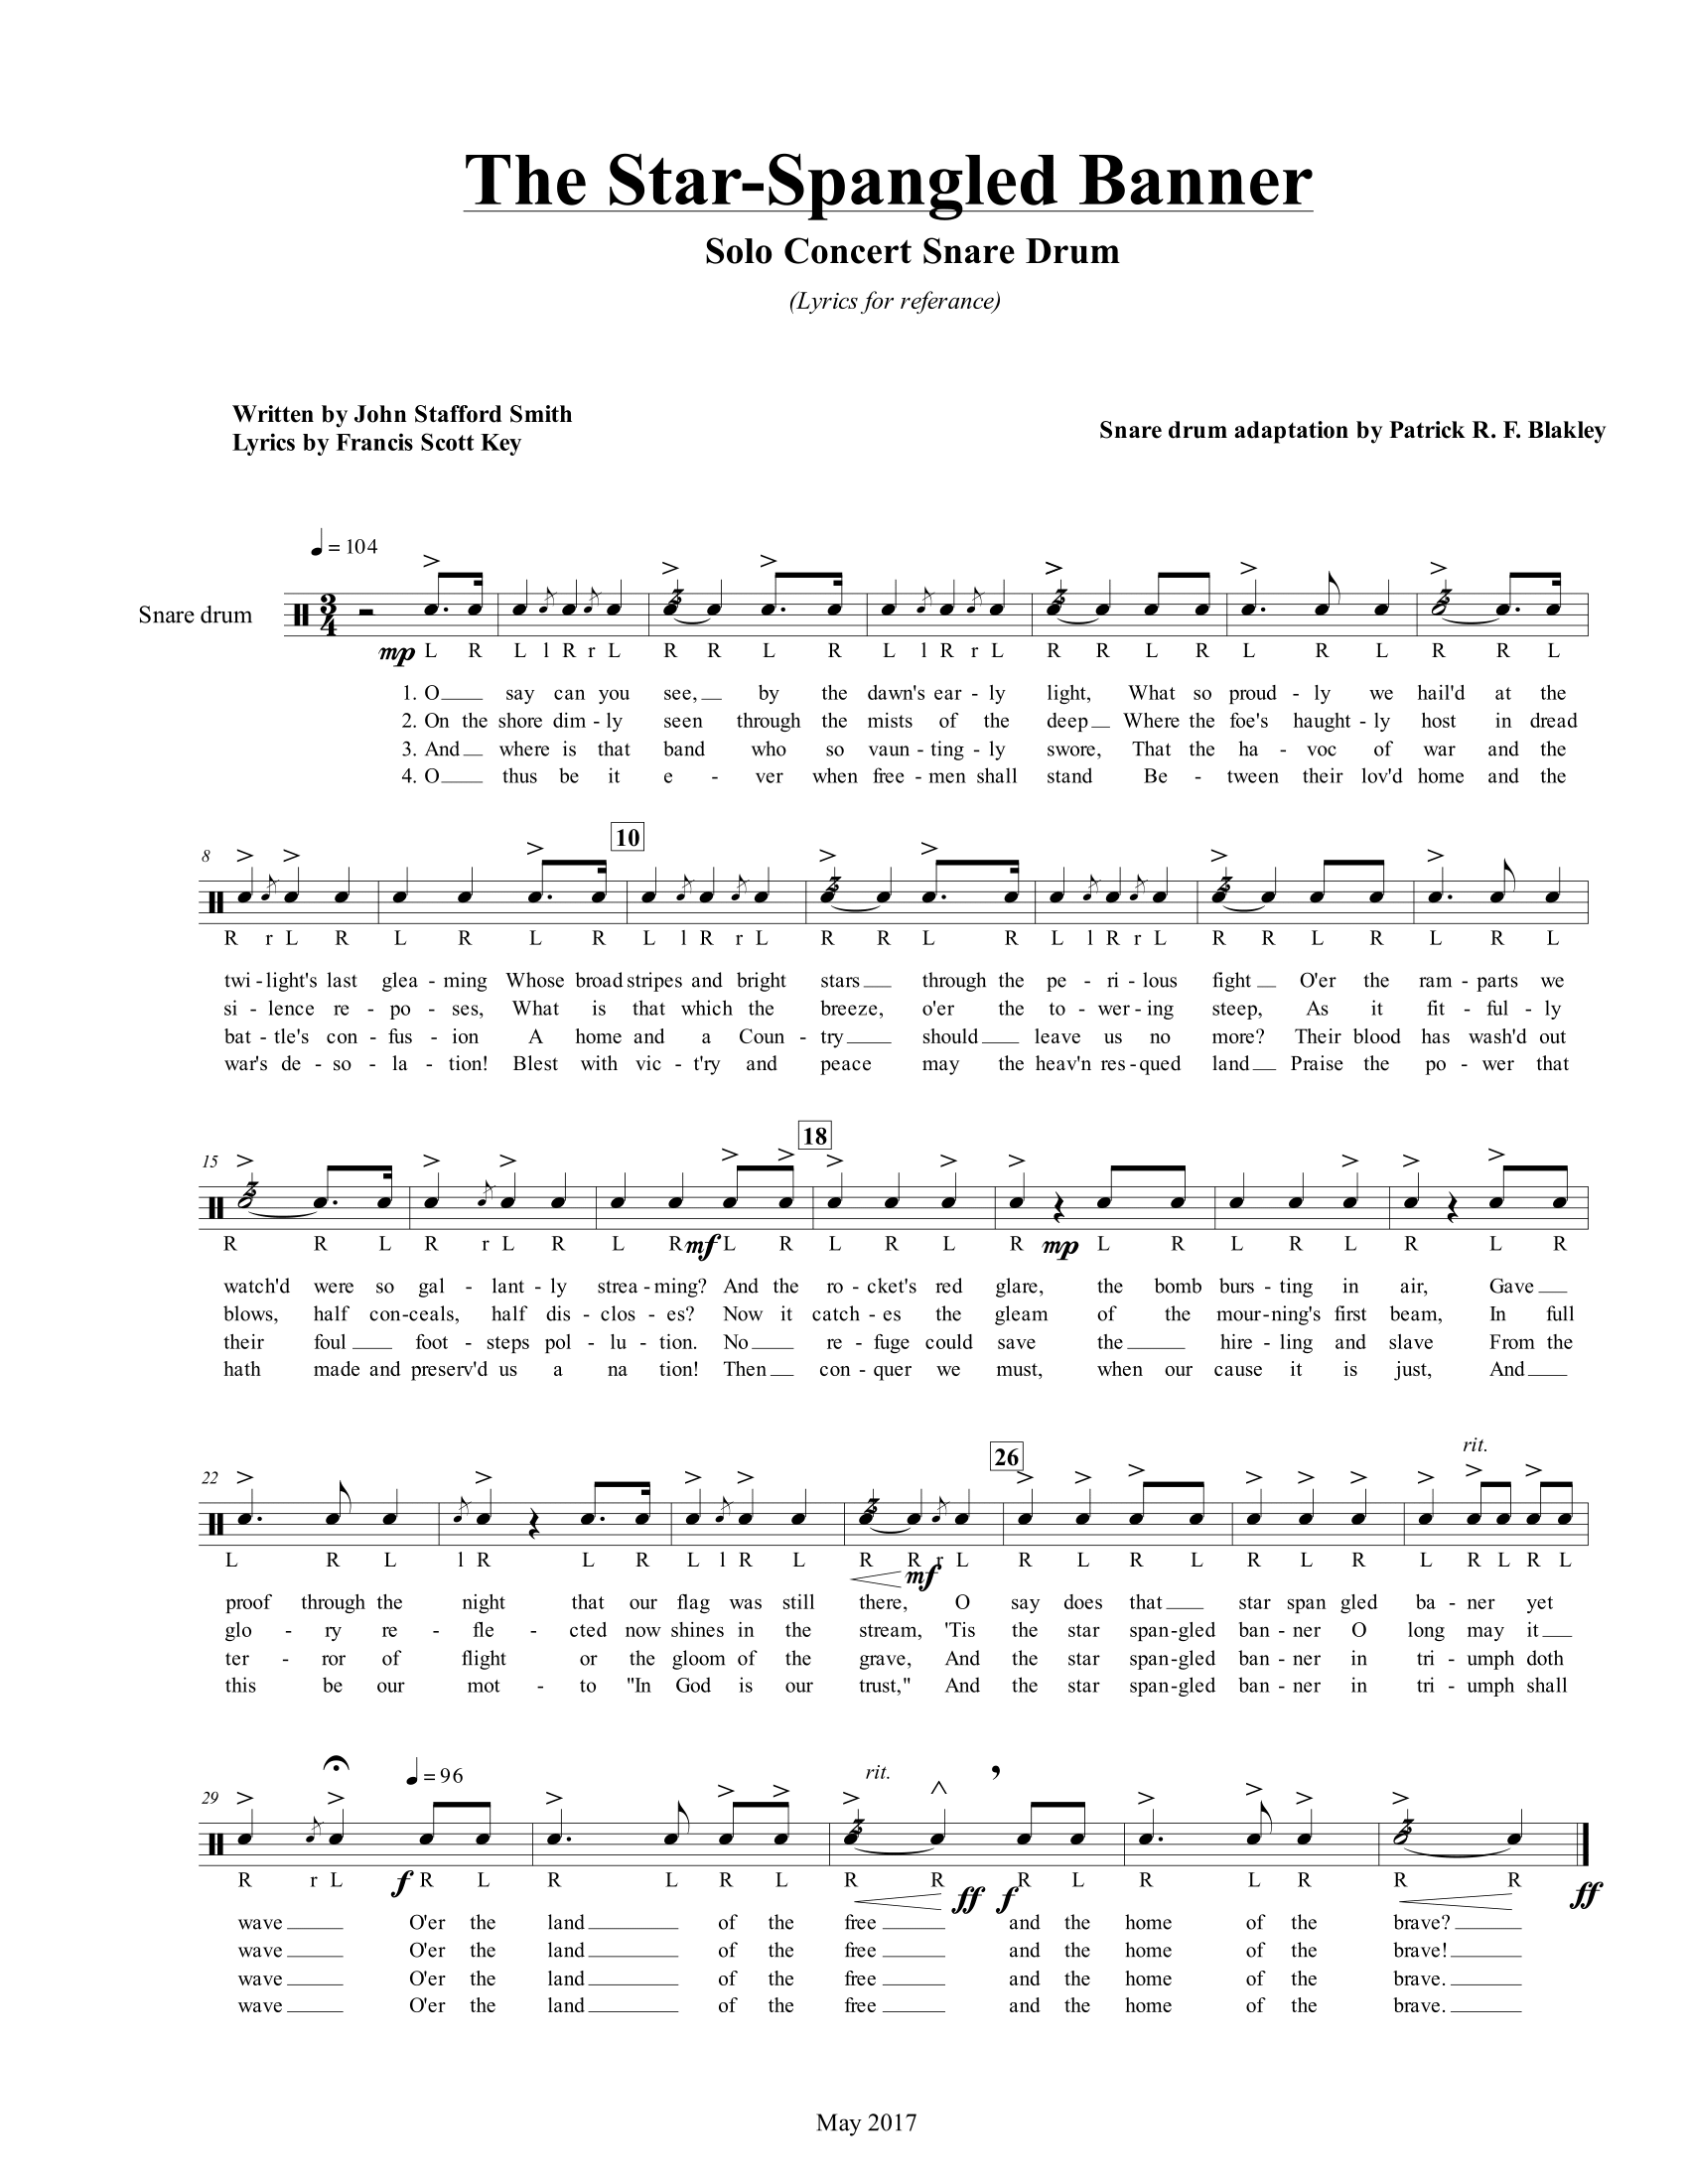 The Star-Spangled Banner Snare Drum Solo - PatrickRFBlakley.com |  PatrickRFBlakley.com